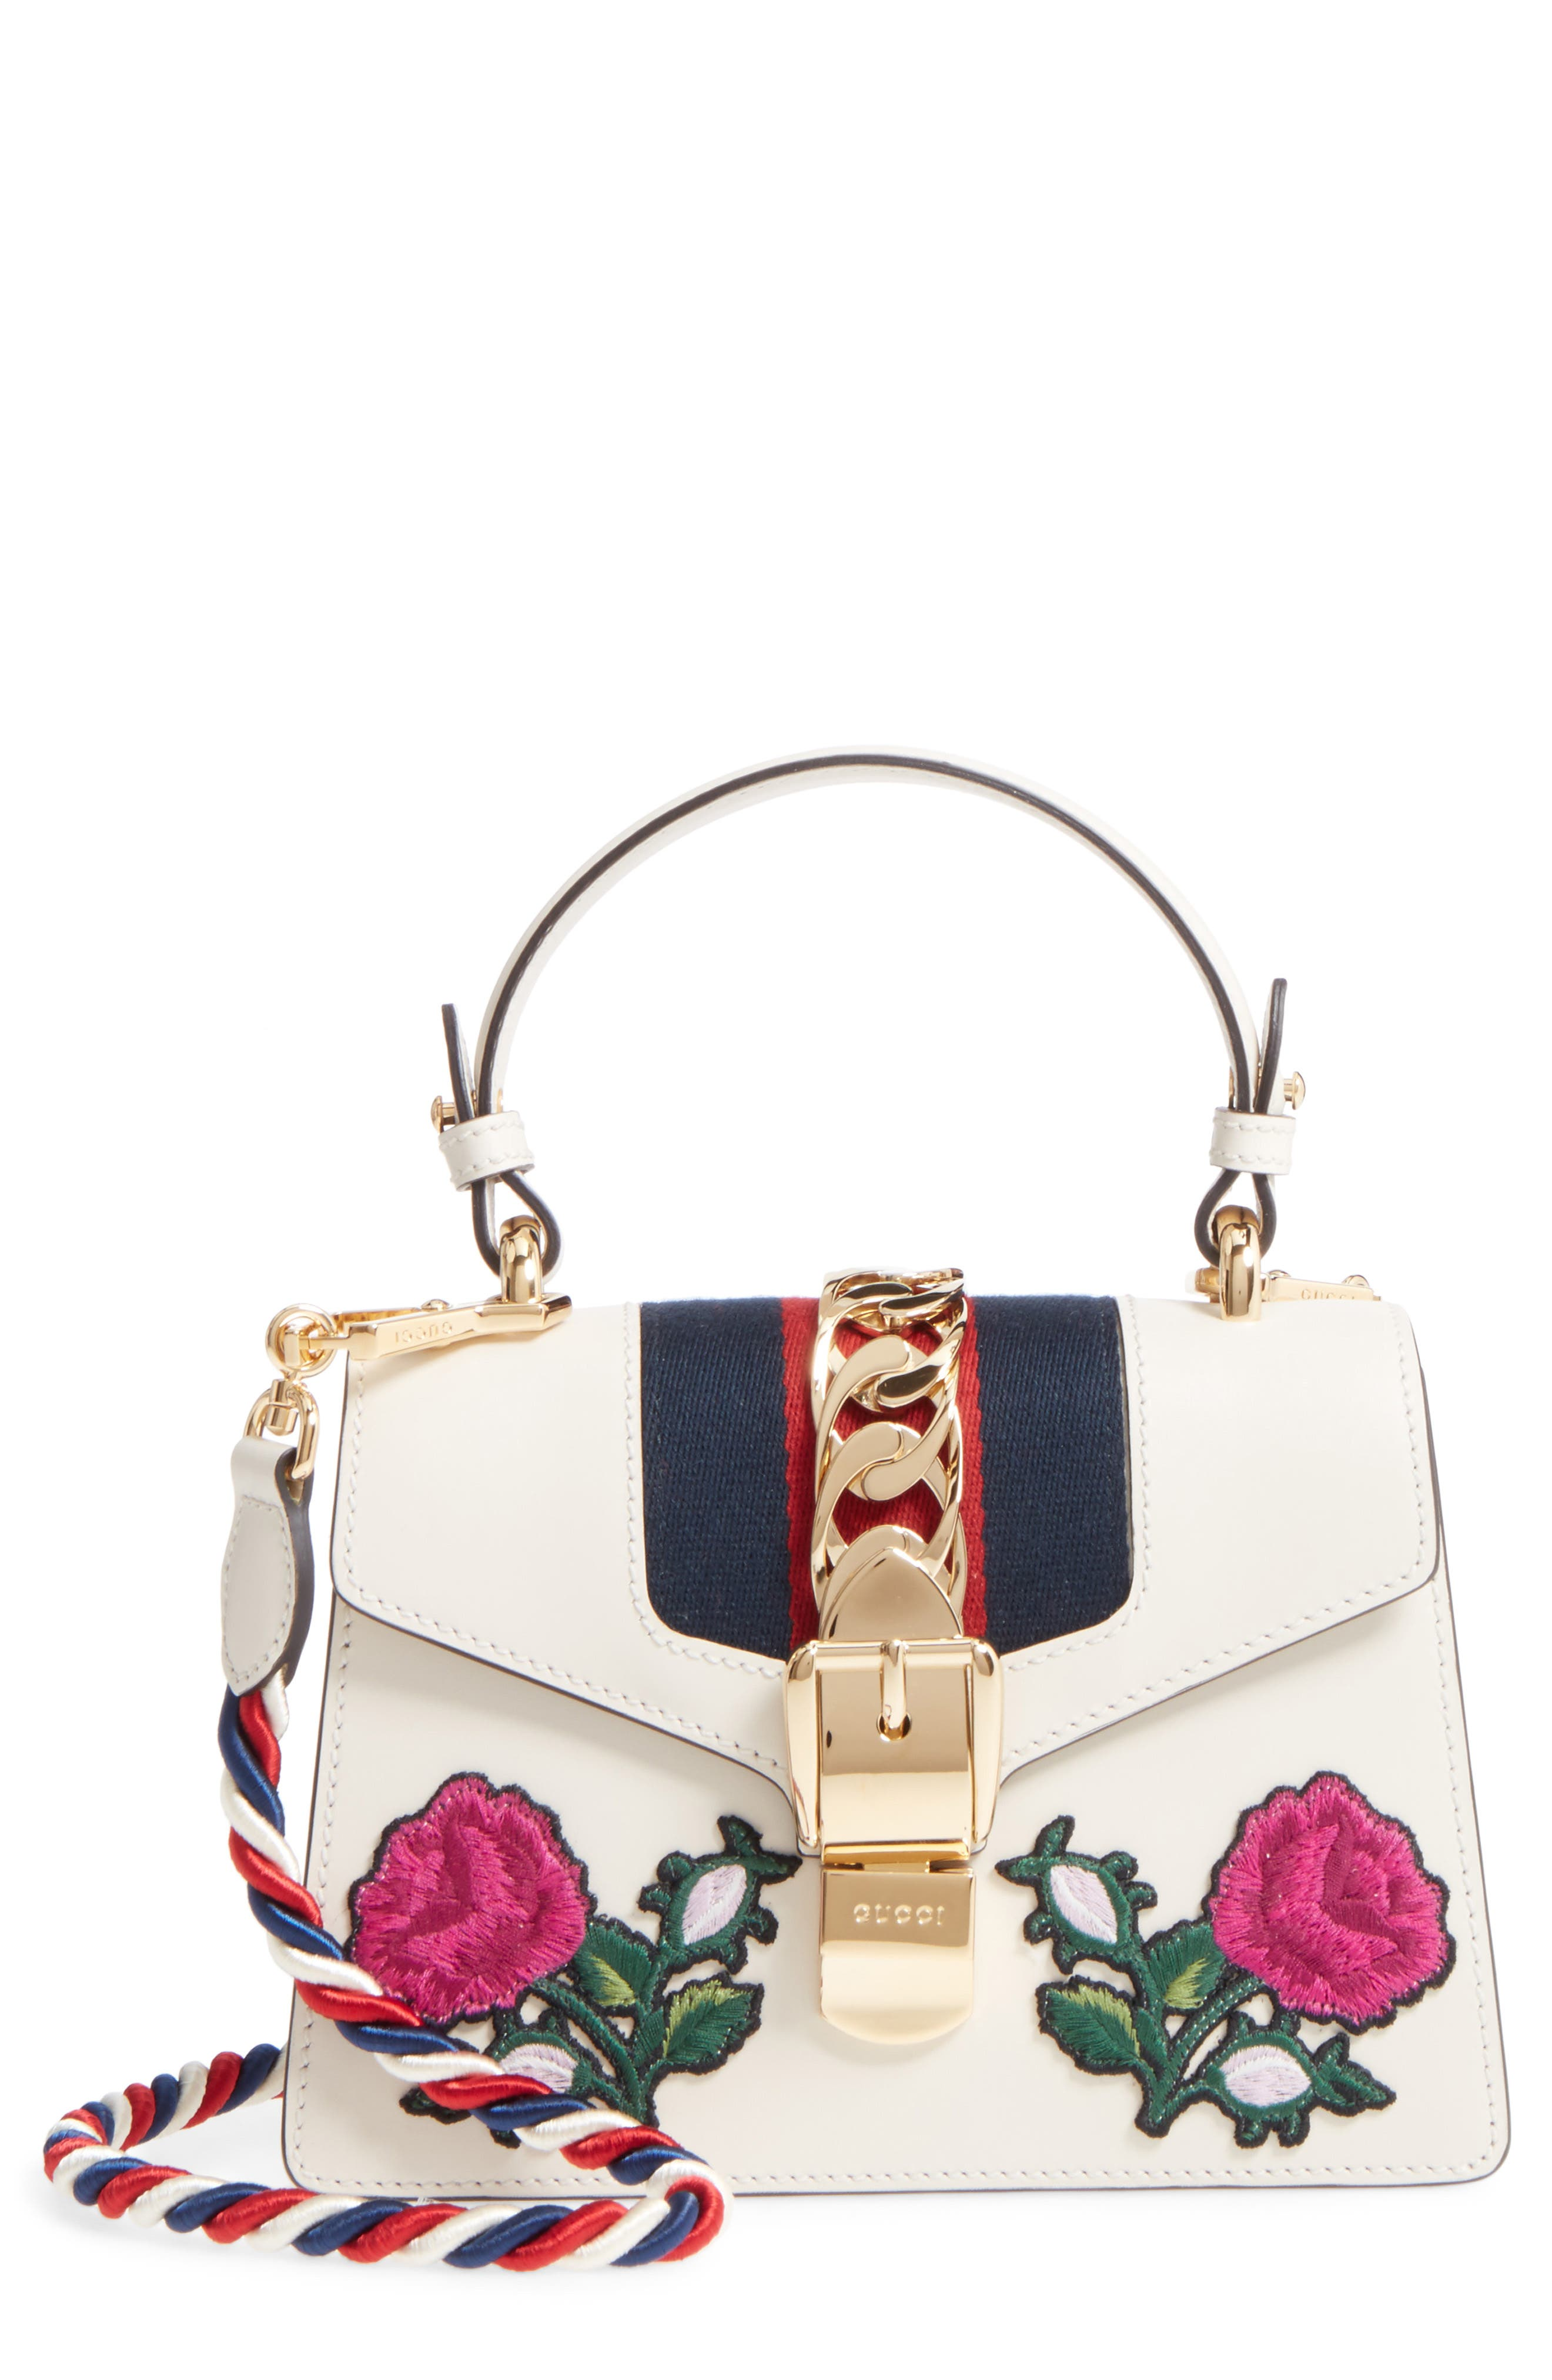 Main Image - Gucci Mini Sylvie Embroidered Floral Leather Shoulder Bag